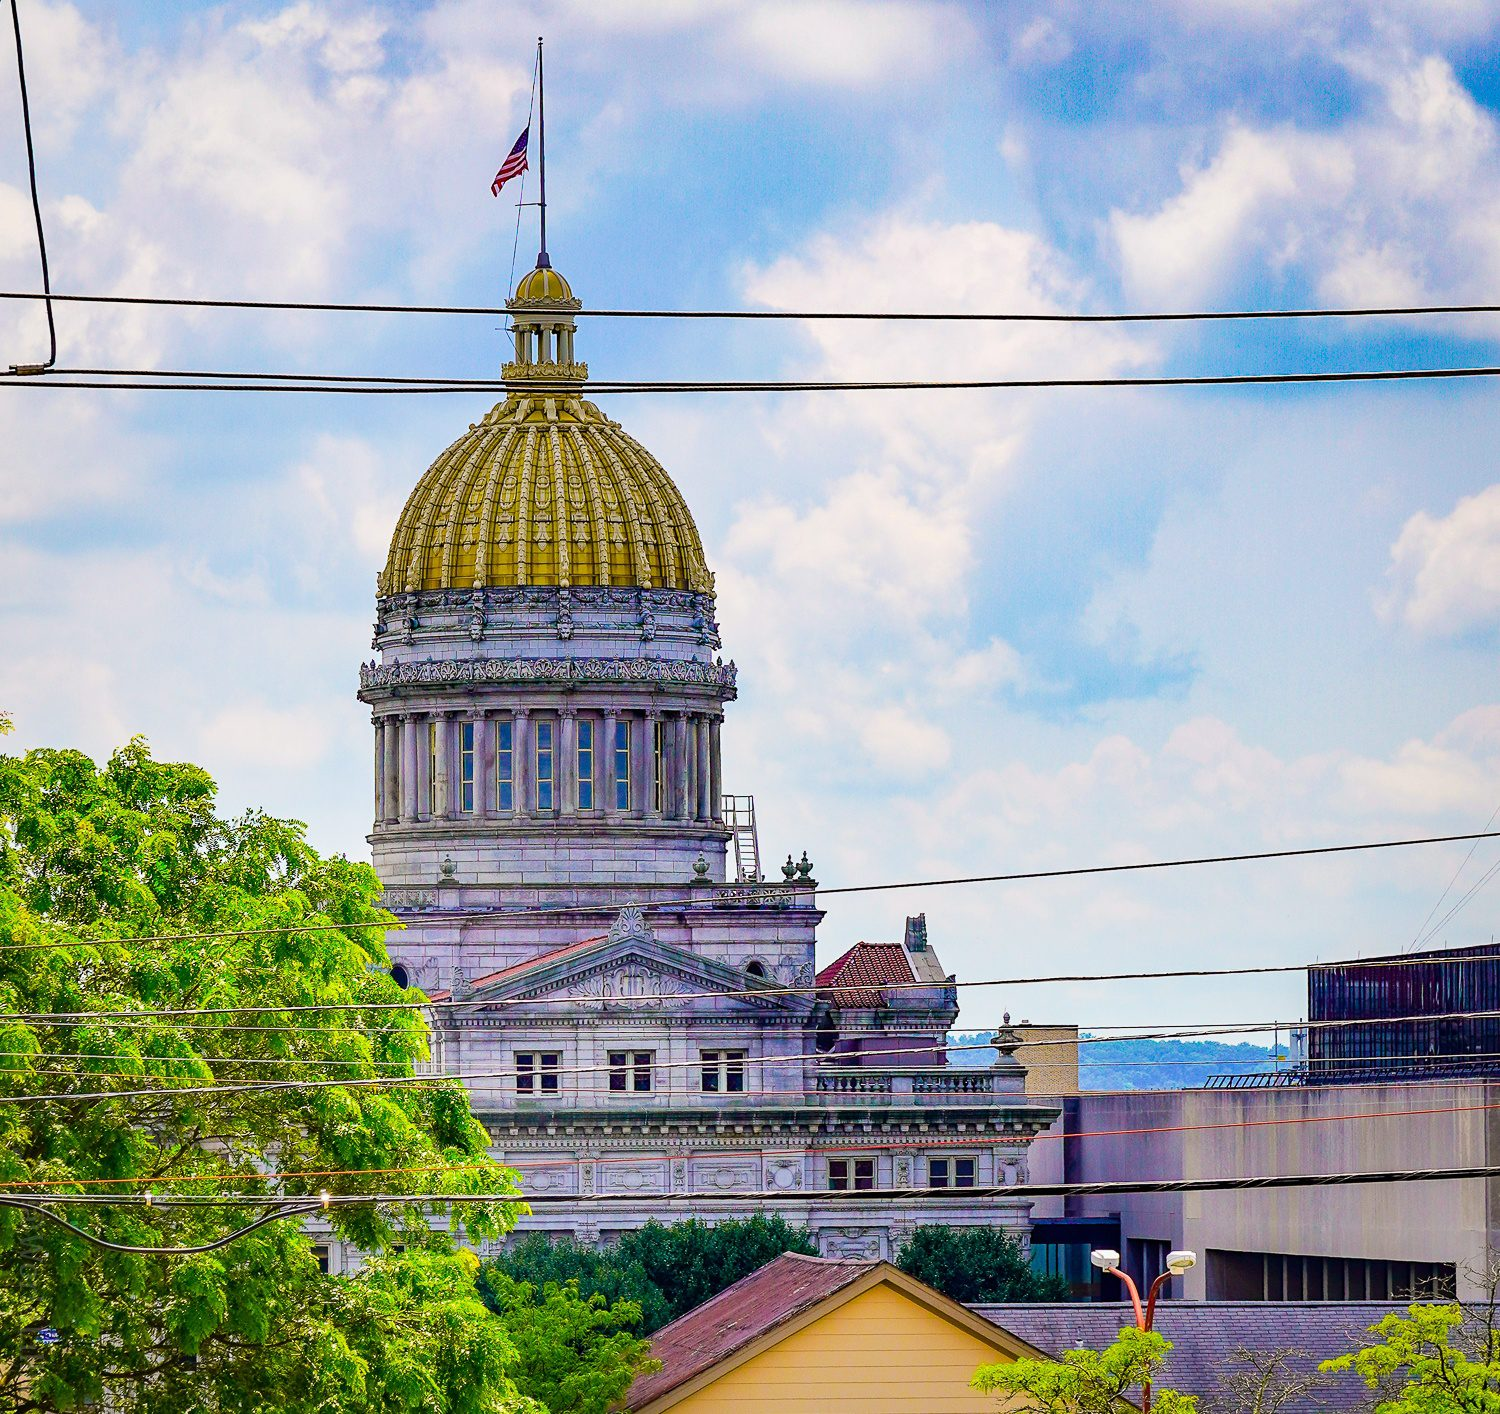 Greensburg, PA dome: Westmoreland County Courthouse